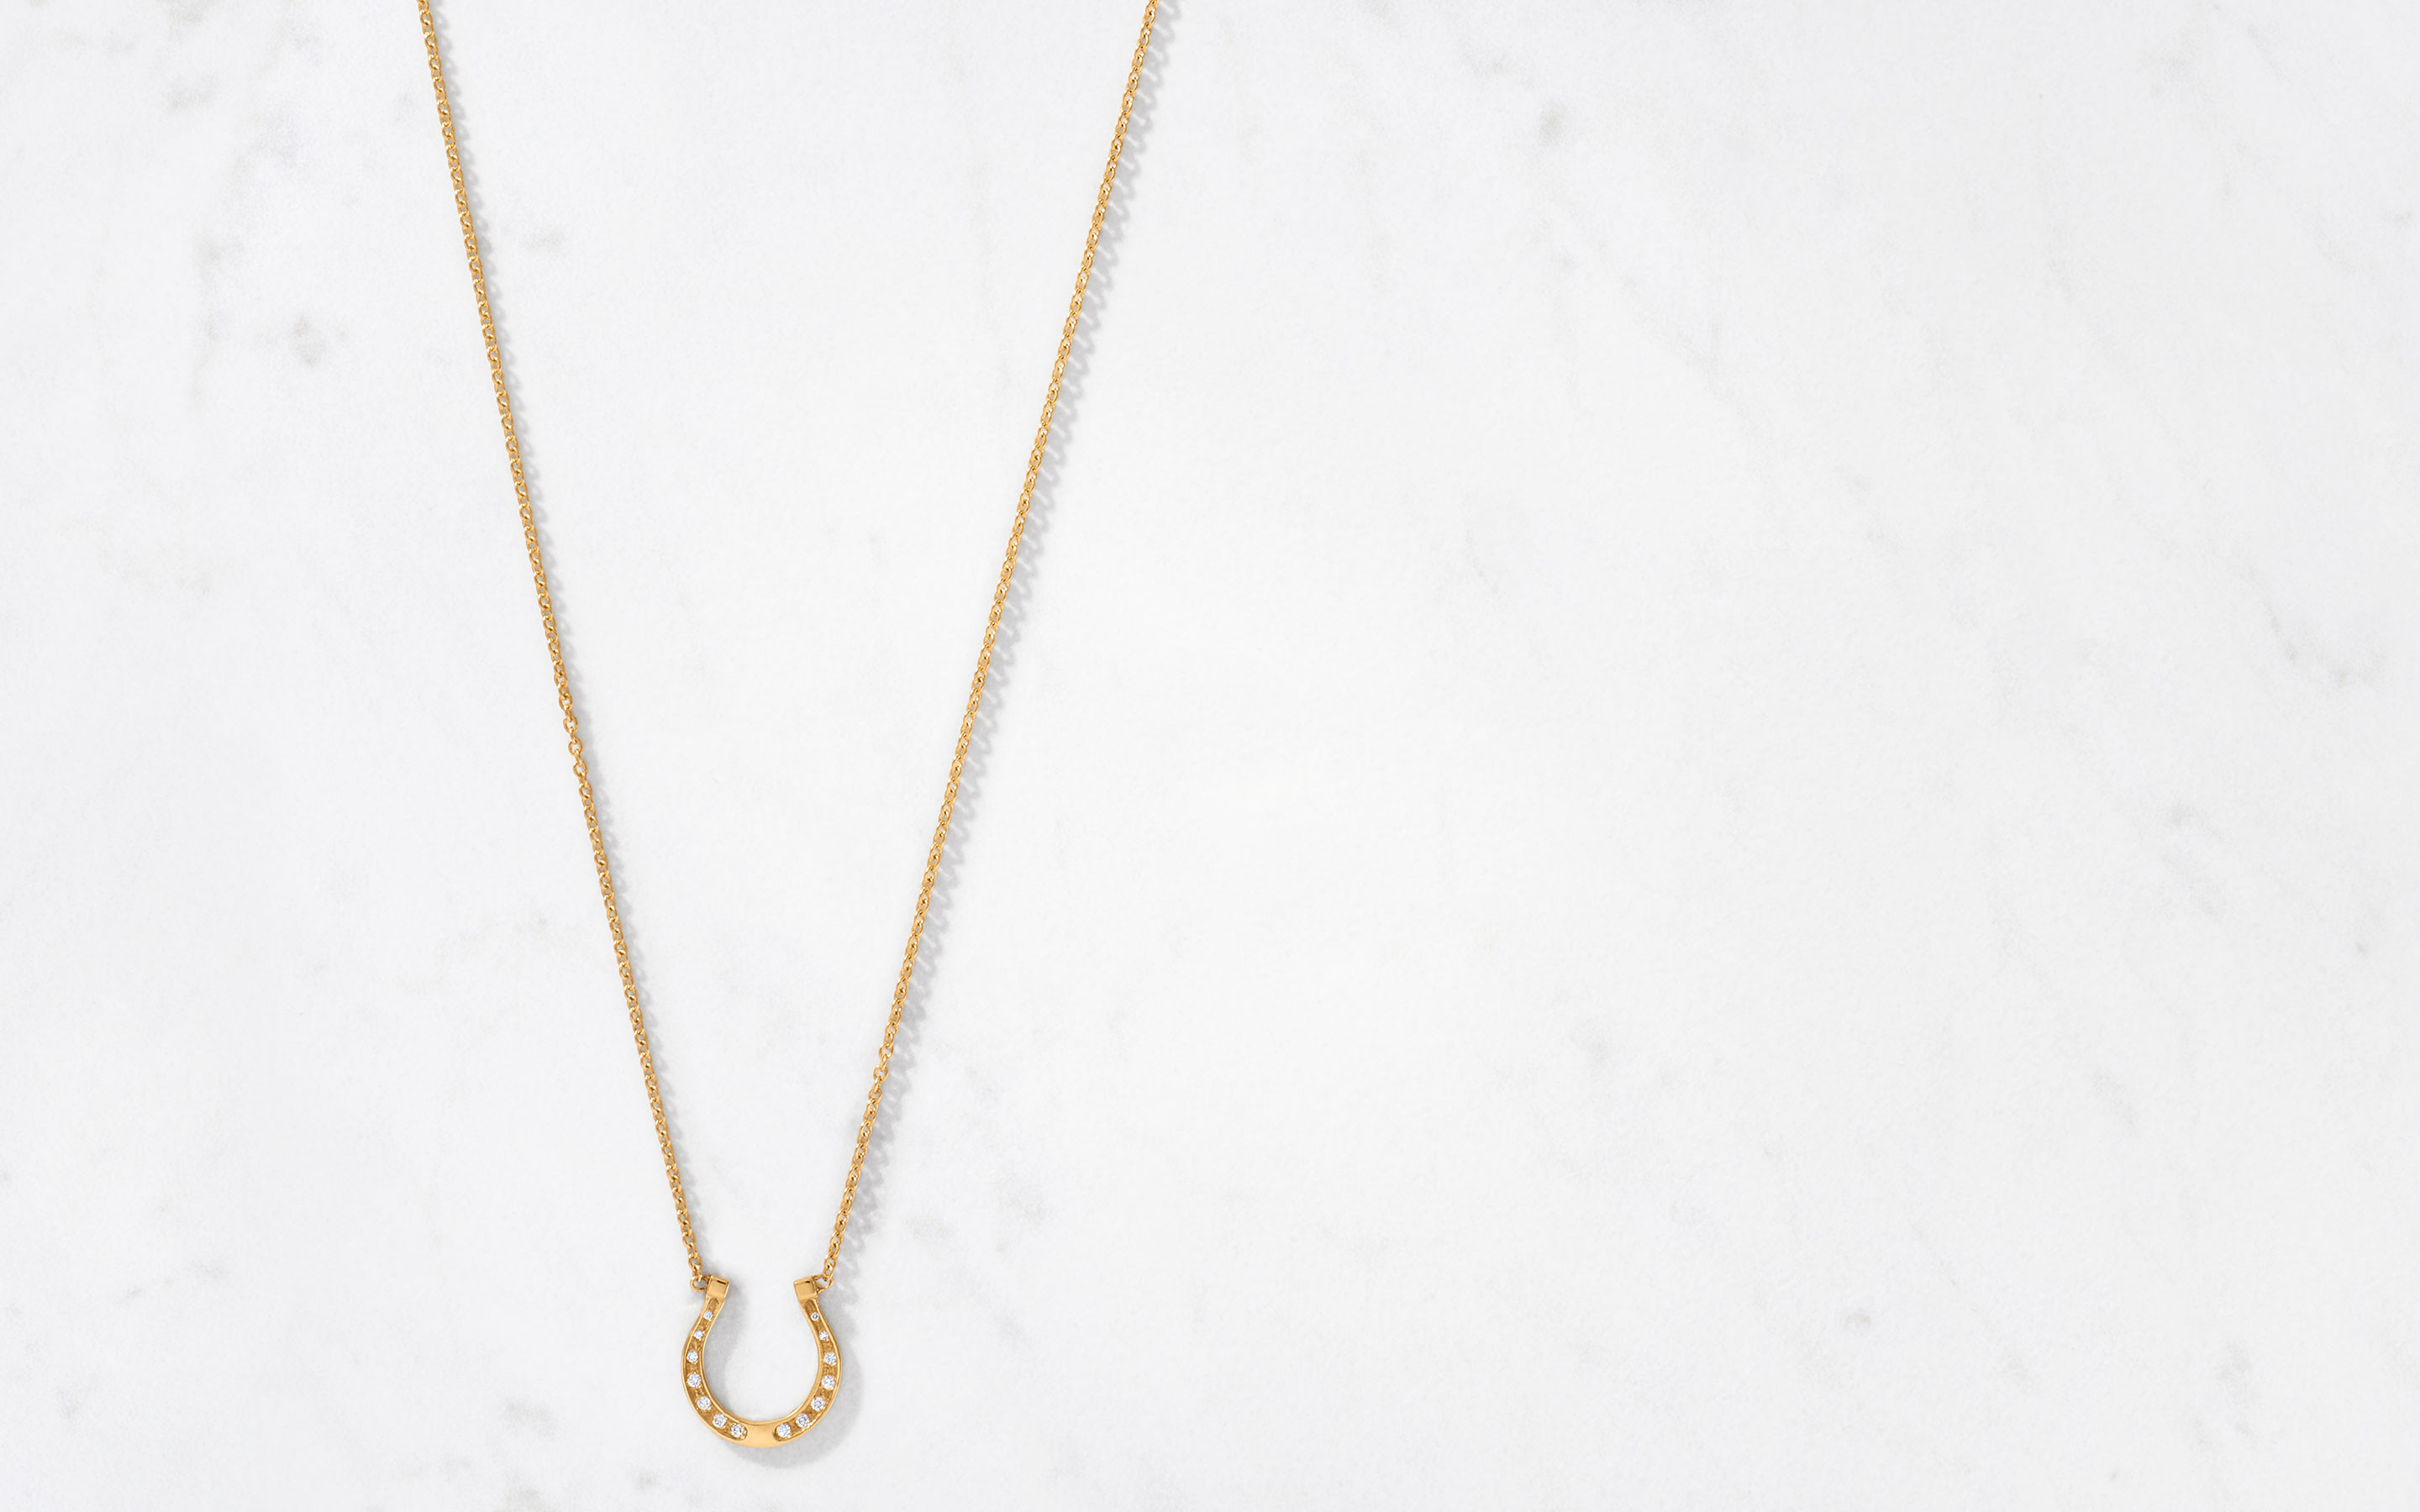 tasteful 22 karat gold necklace with a posh horseshoe pendant covered in 14 center cut round diamonds